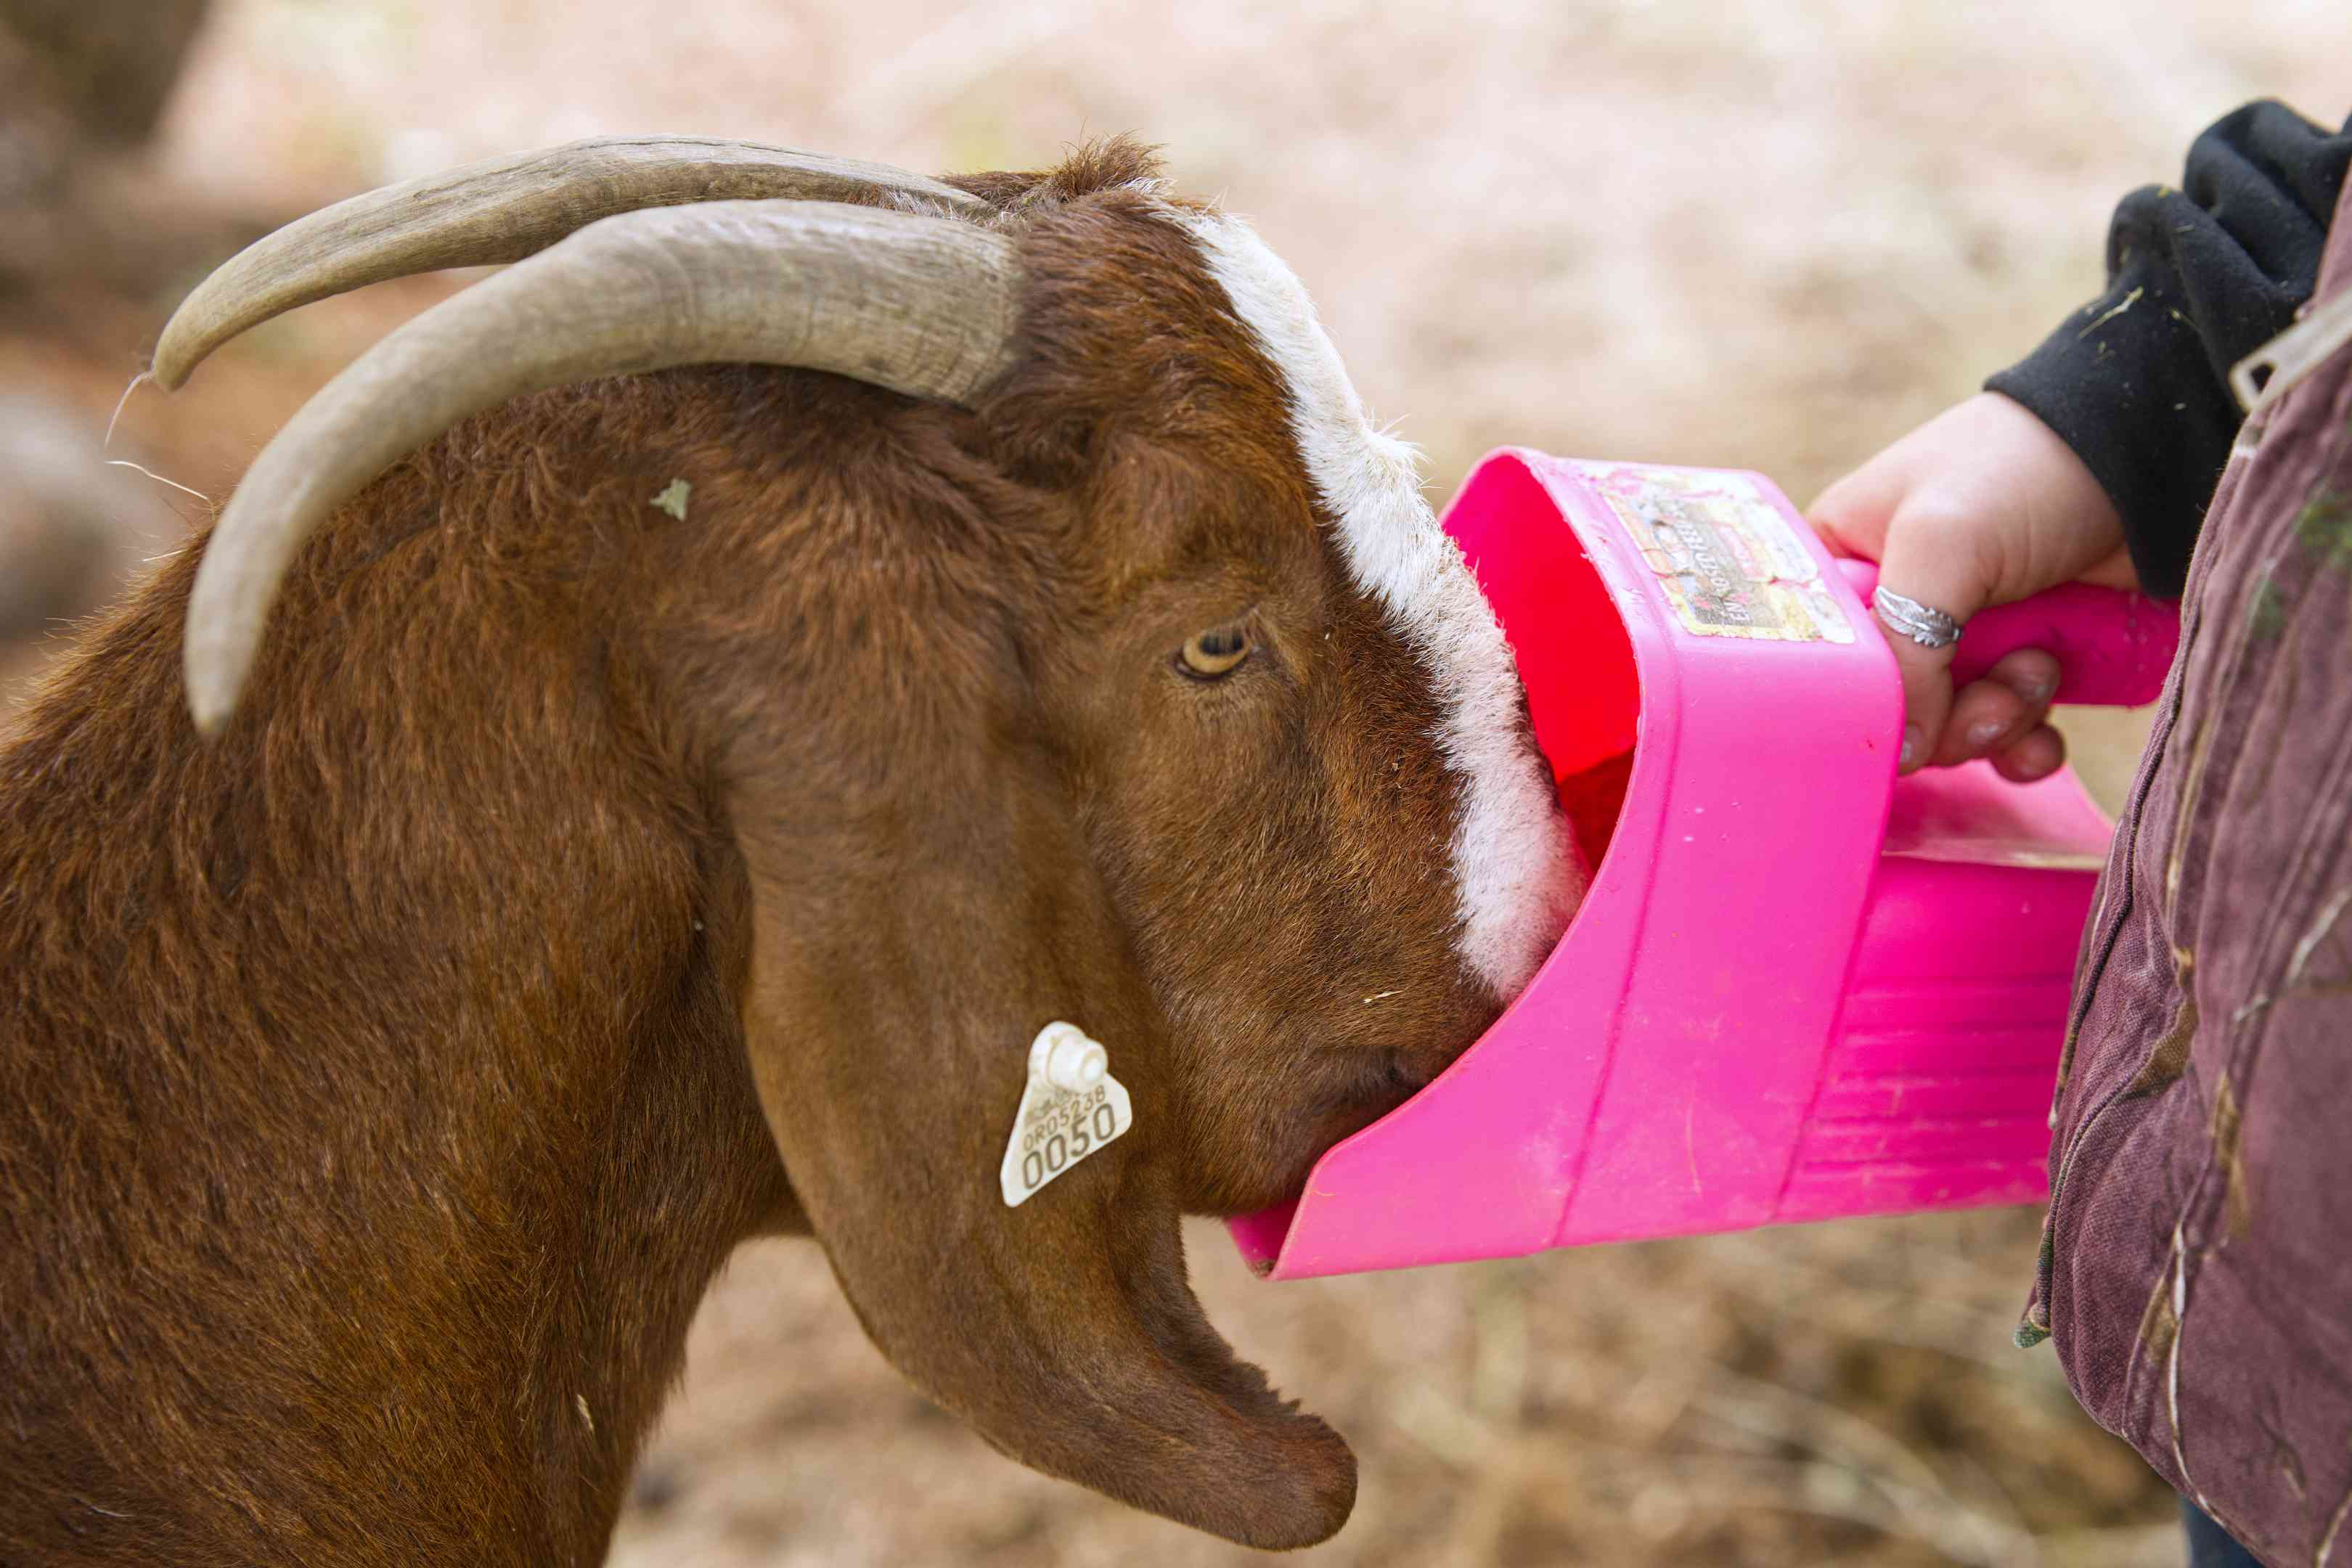 horned brown goat sticks face in pink plastic feeder held by kid